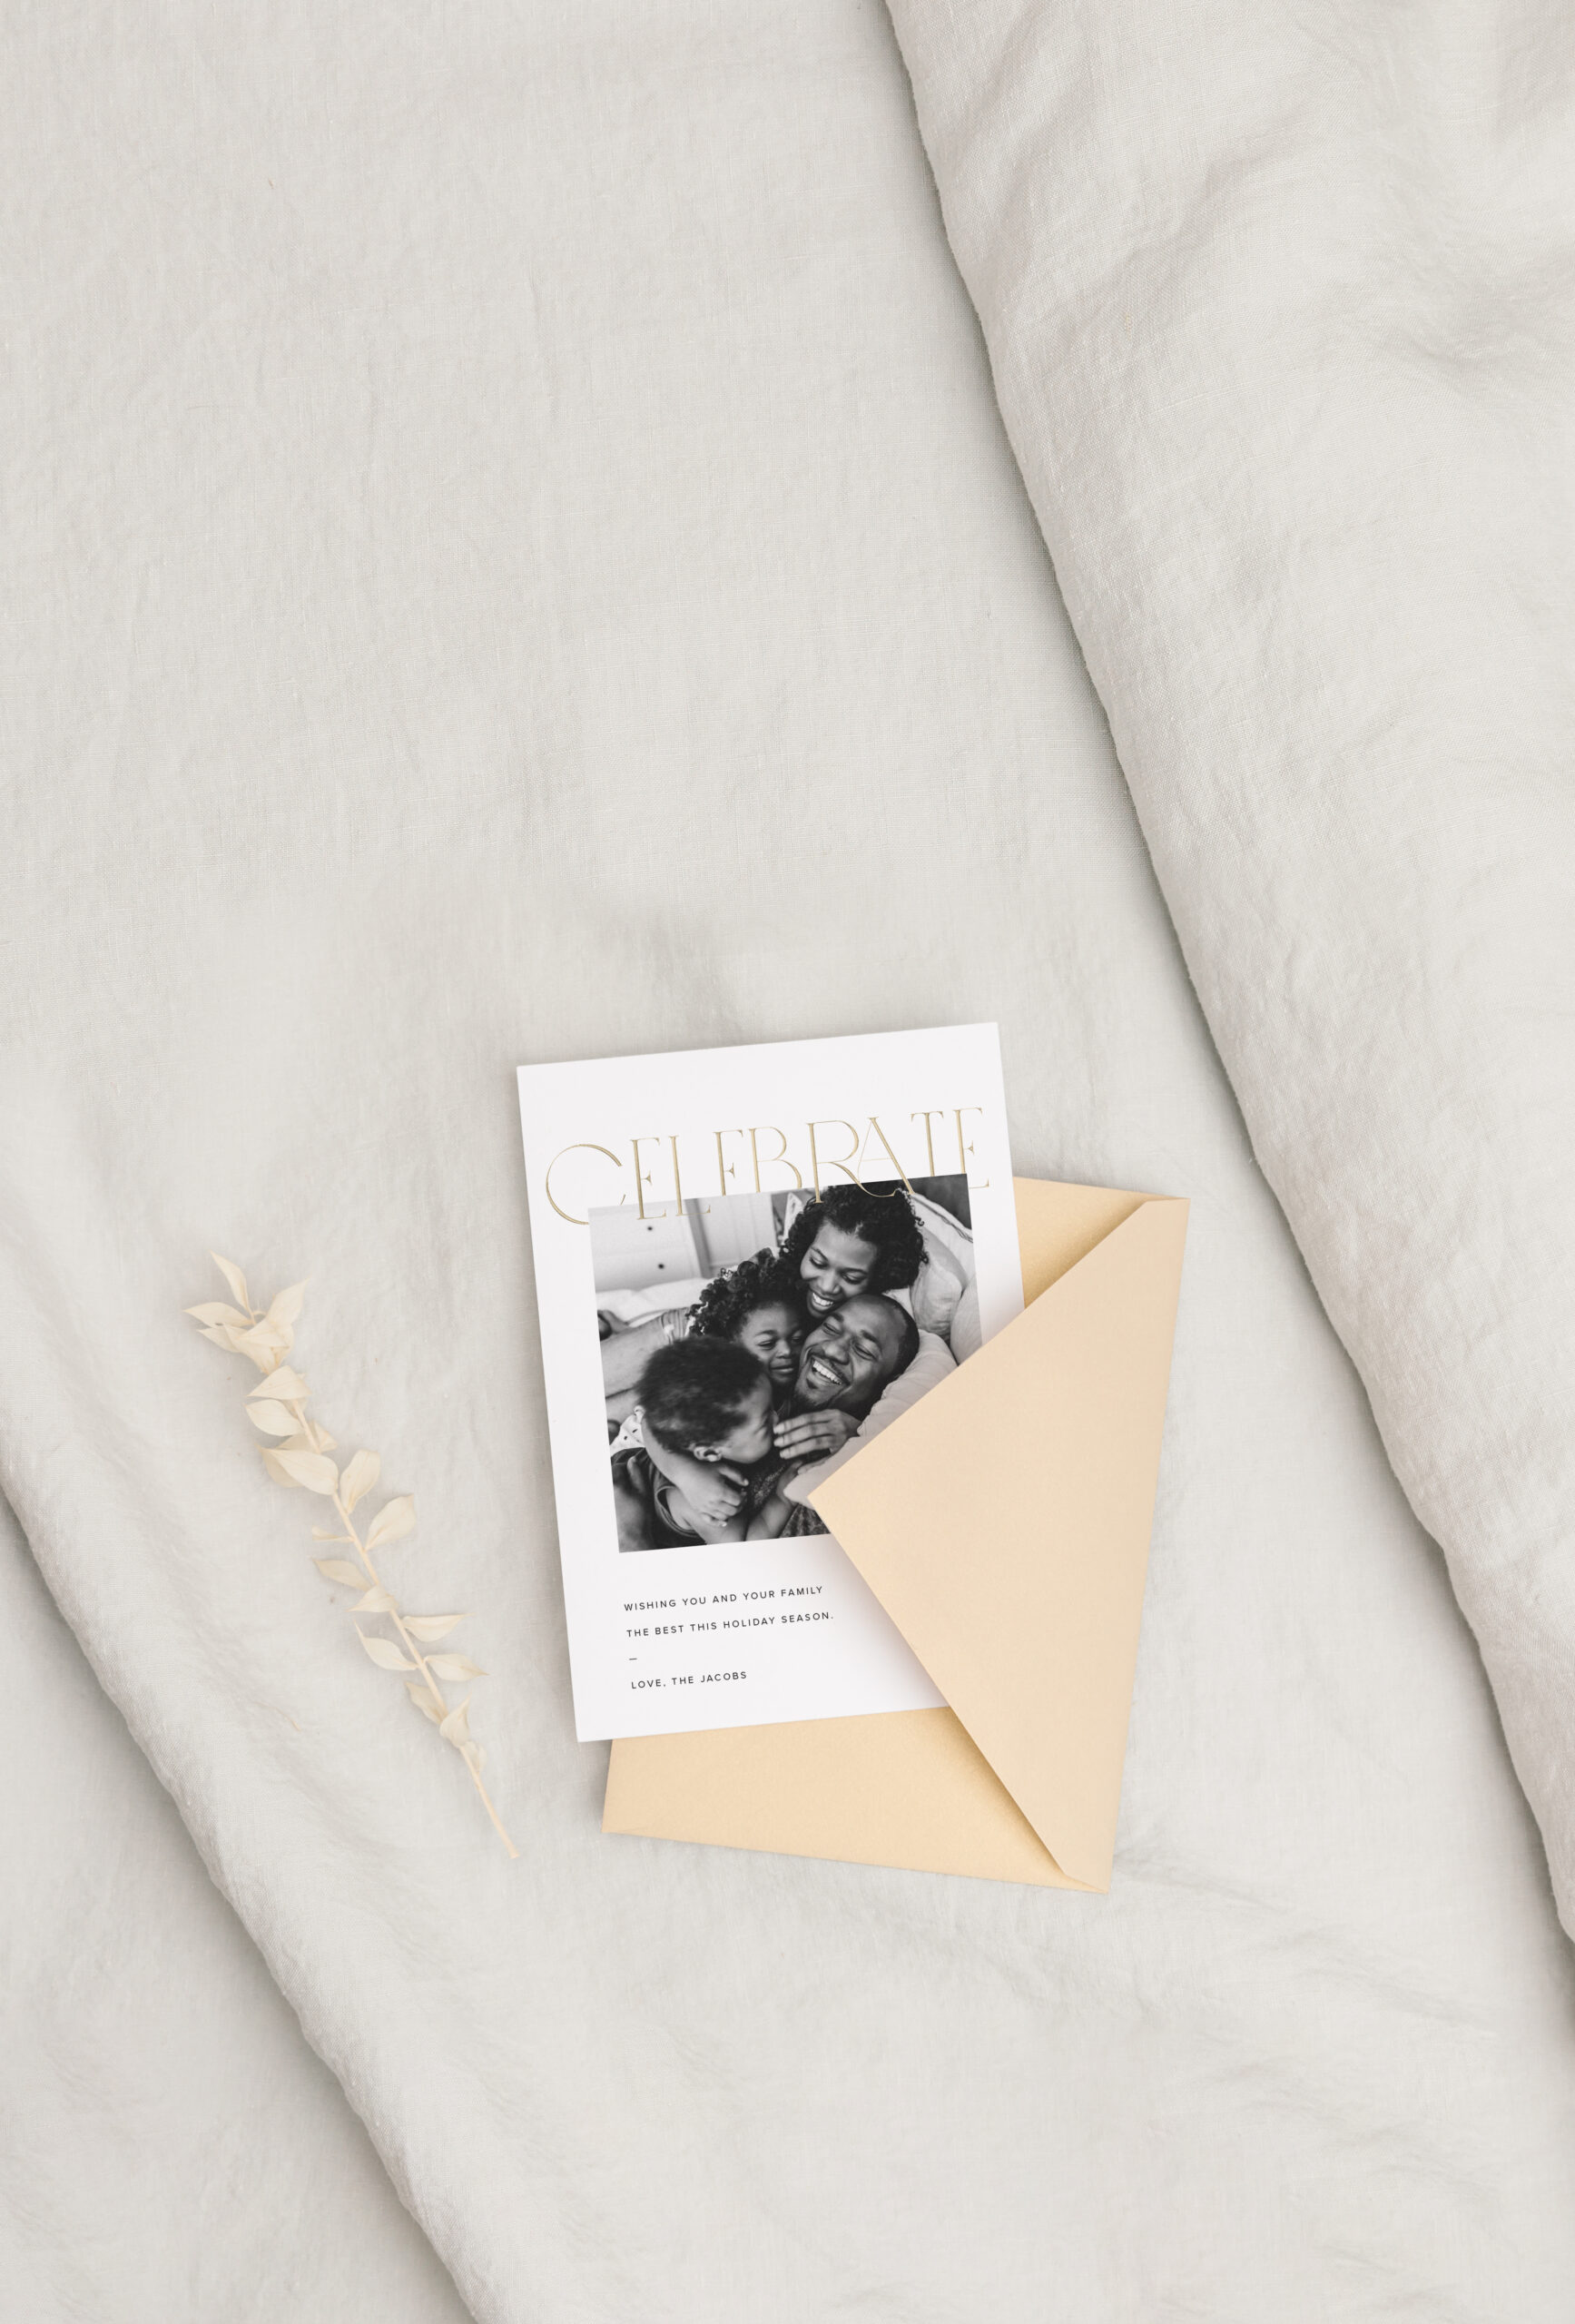 20191002-holiday-card-gold-envelope-top-down-on-linen-folded